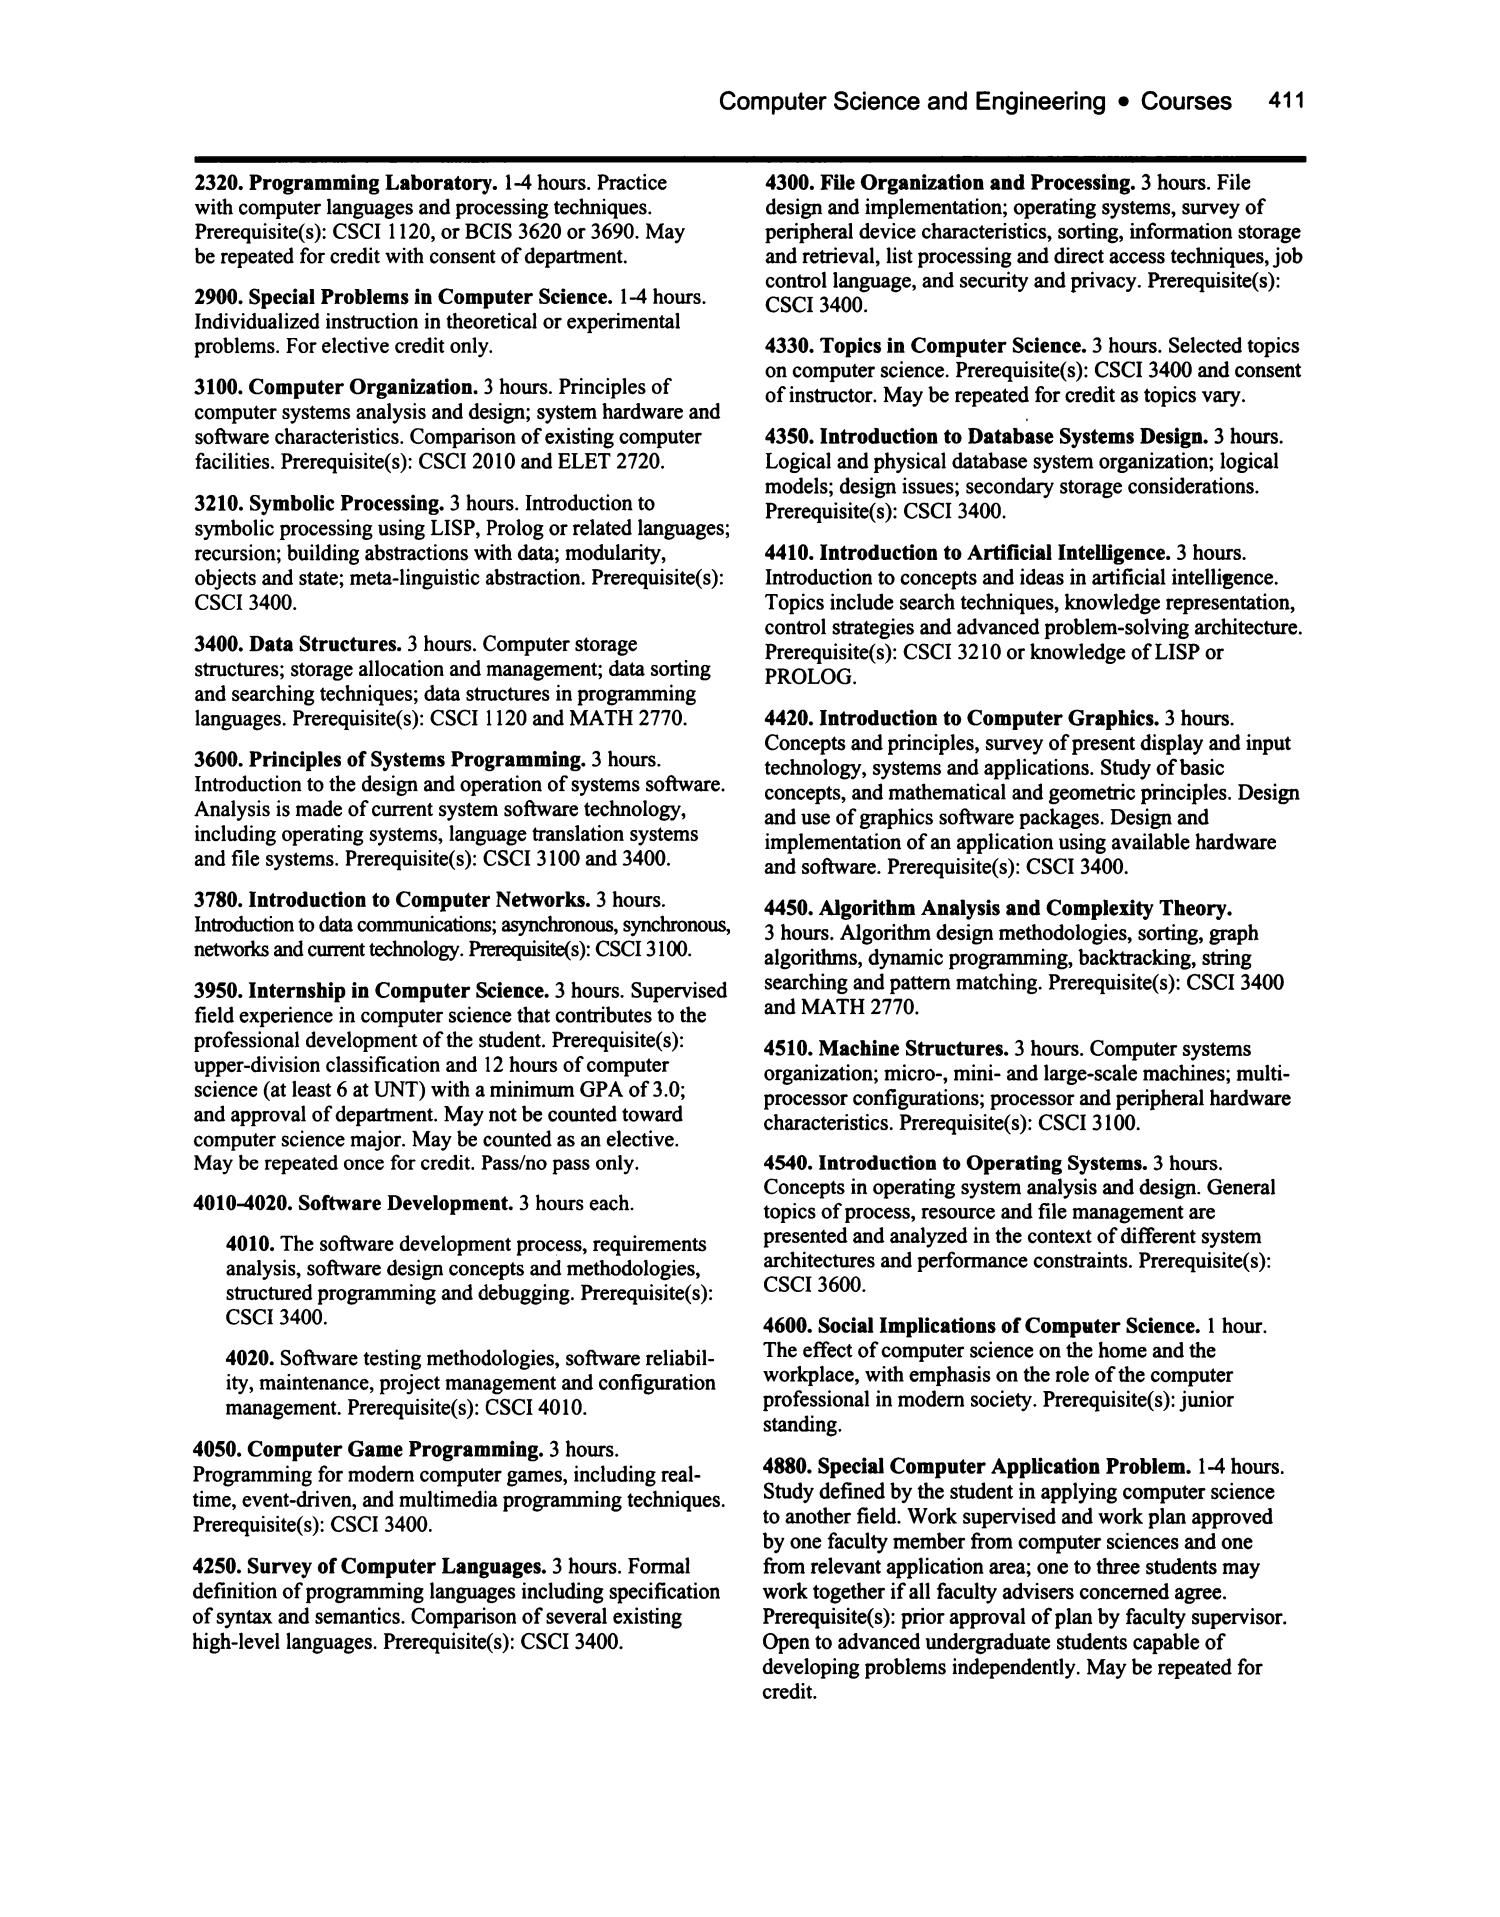 Catalog Of The University Of North Texas 2003 2004 Undergraduate Page 411 Unt Digital Library